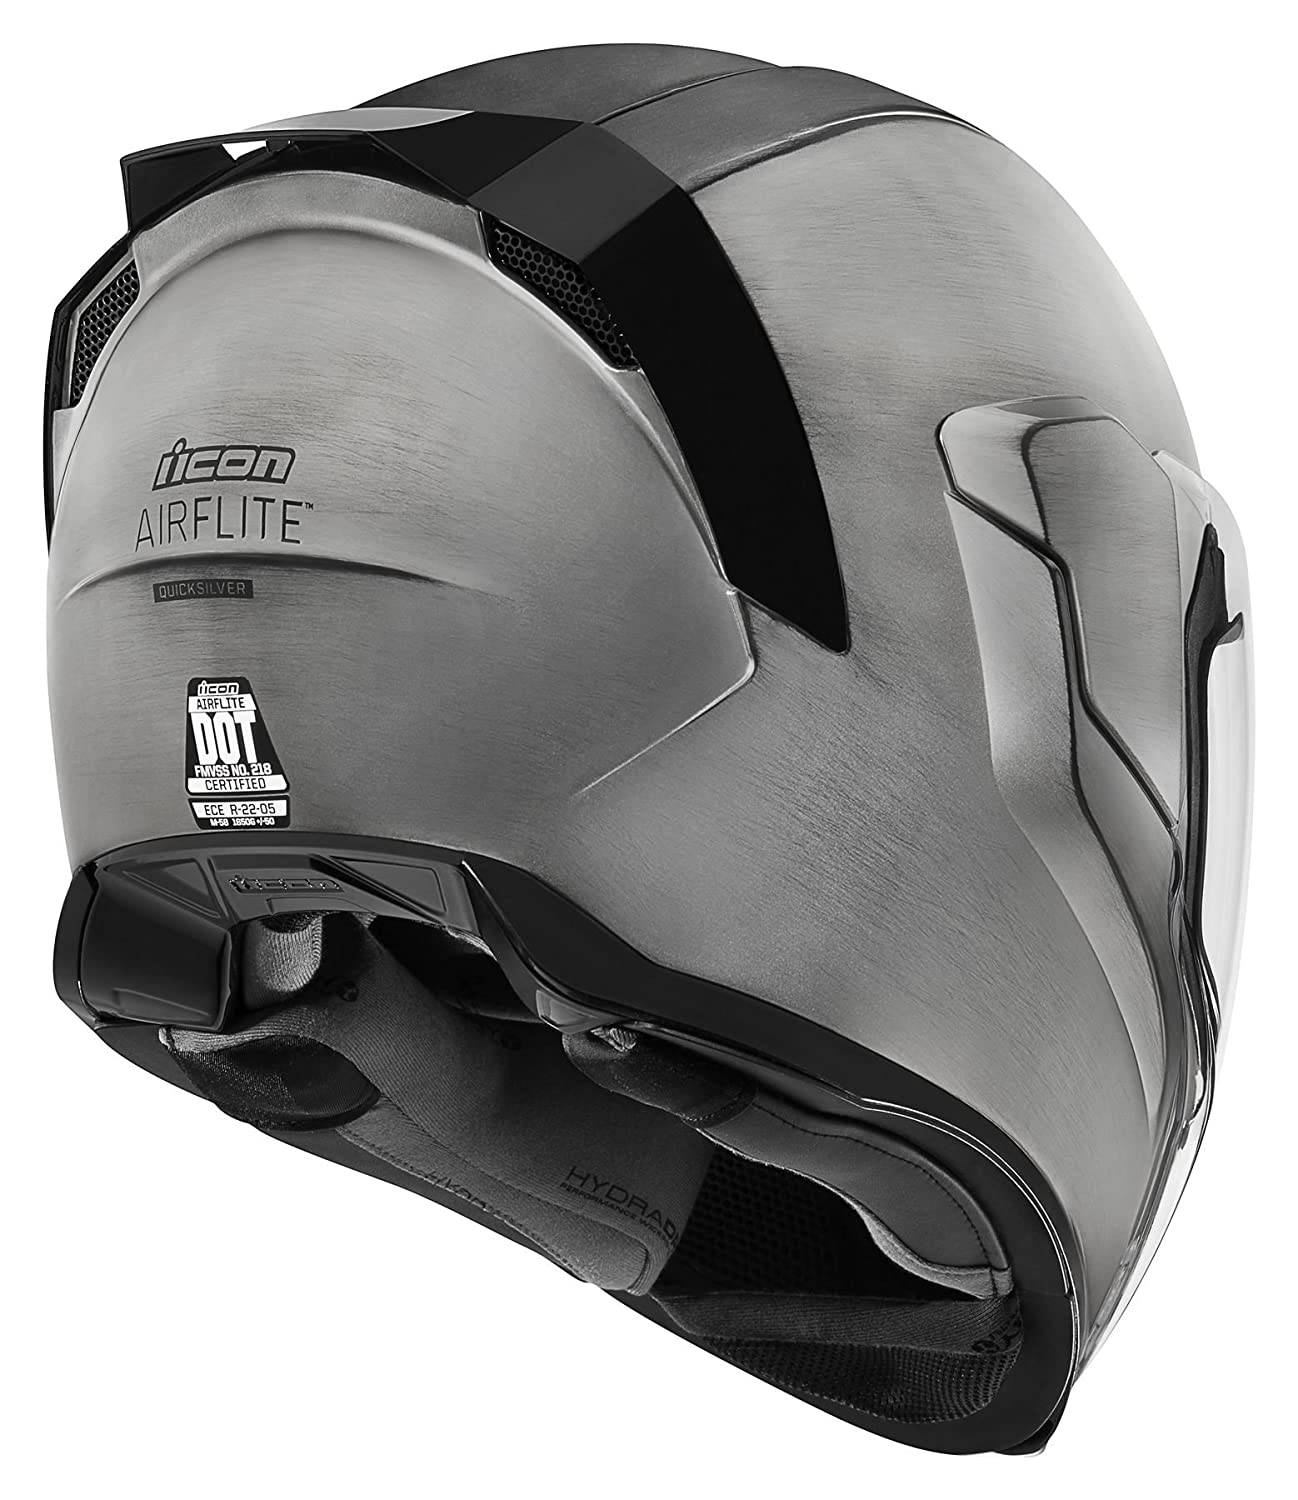 Amazon.es: Casco de motocicleta Airflite Quicksilver de Icon, color plateado